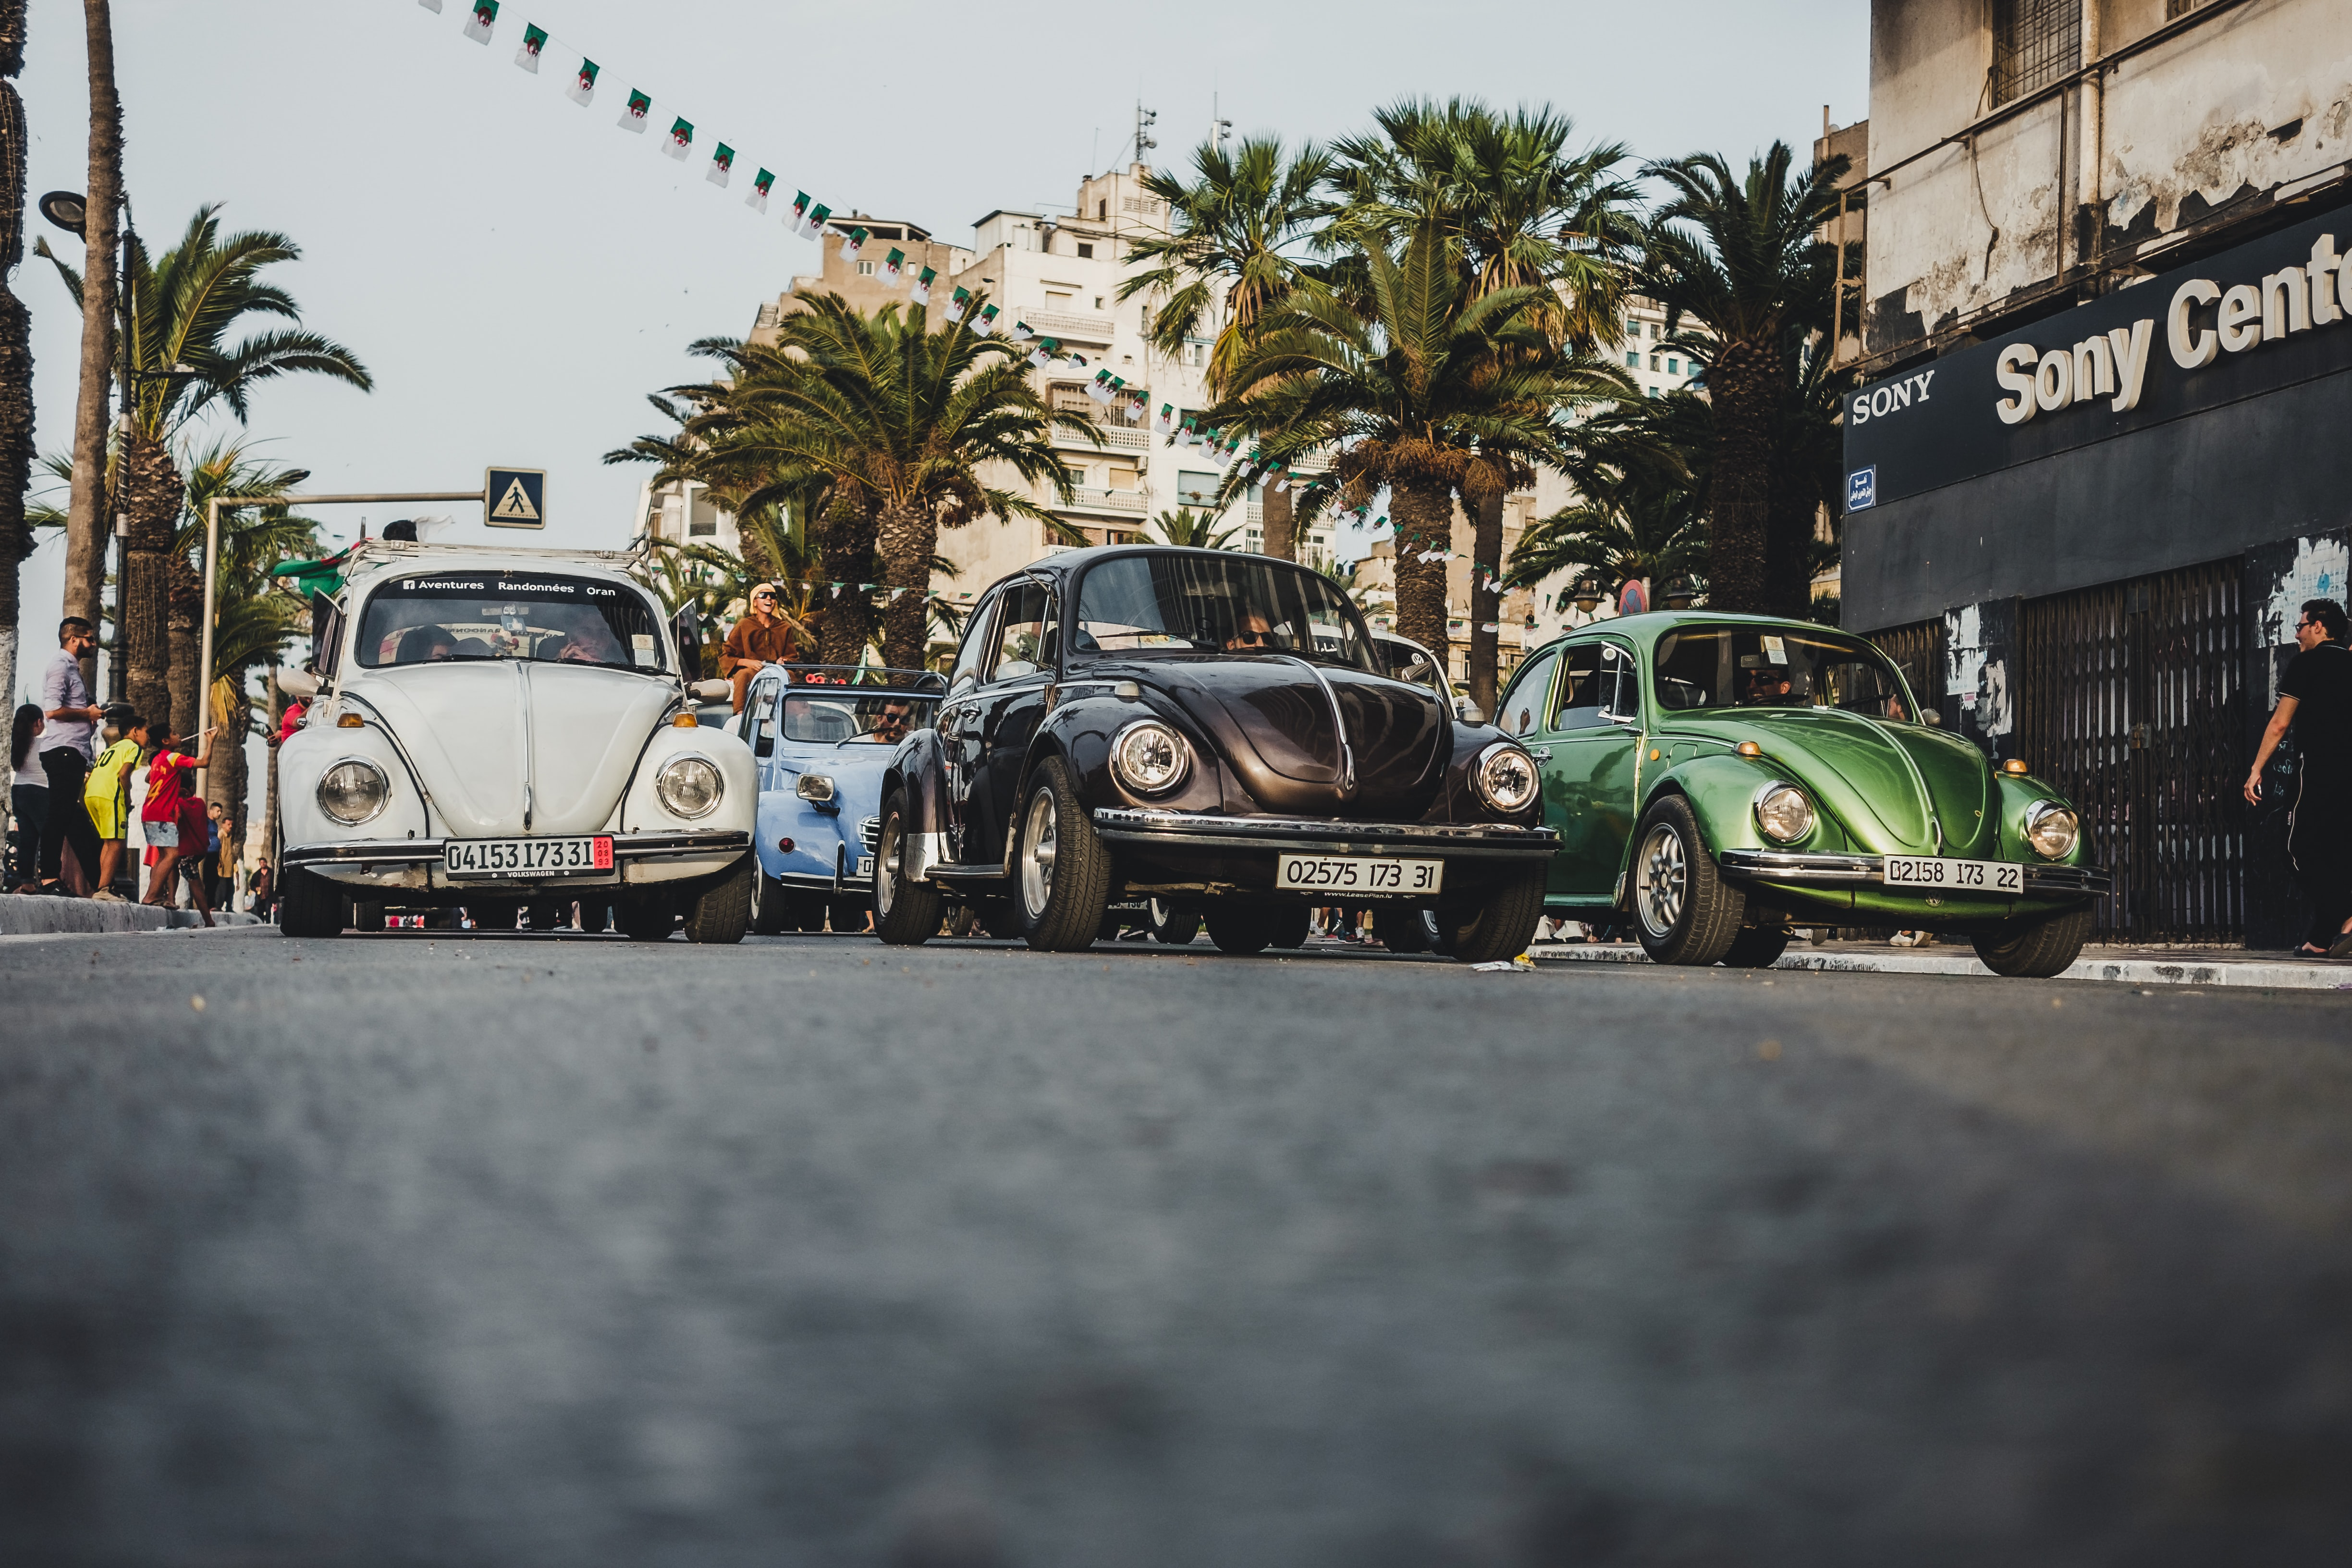 three Volskwagen Beetles on concrete road